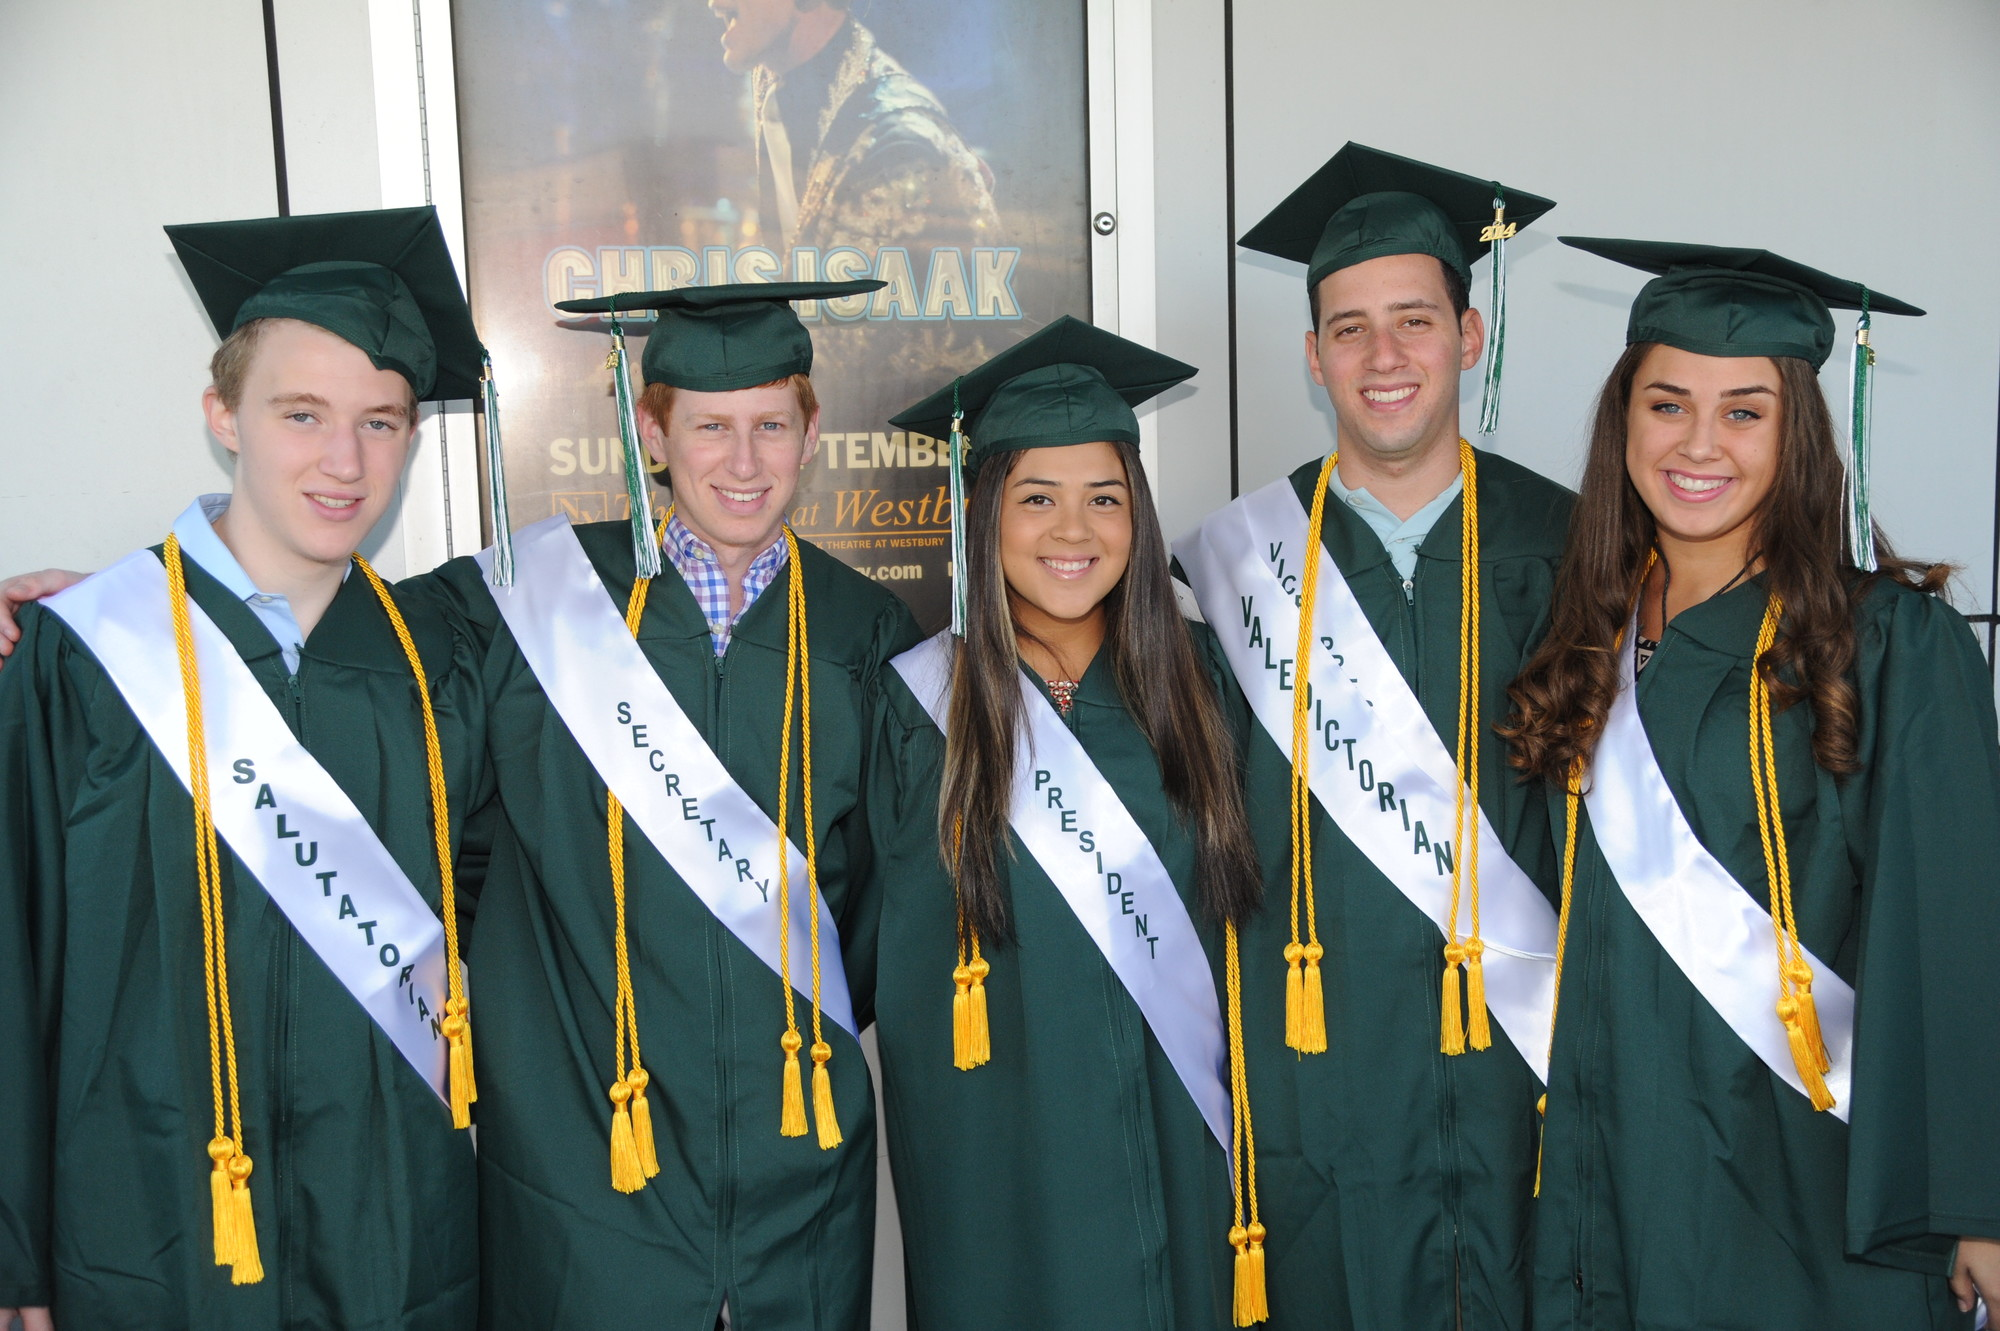 Gathering for a group shot were, from left, class of 2014 salutatorian Ben November, Secretary Ross Feldman, President Valentina Elegante, valedictorian and Vice President Benjamin Rabinowitz, and Treasurer Olivia Johansen.